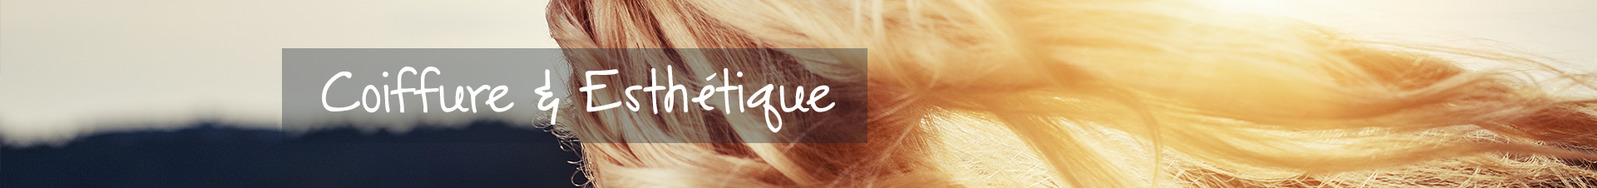 Articles Coiffure/Esthétique - Cantal | Aveyron | Allier